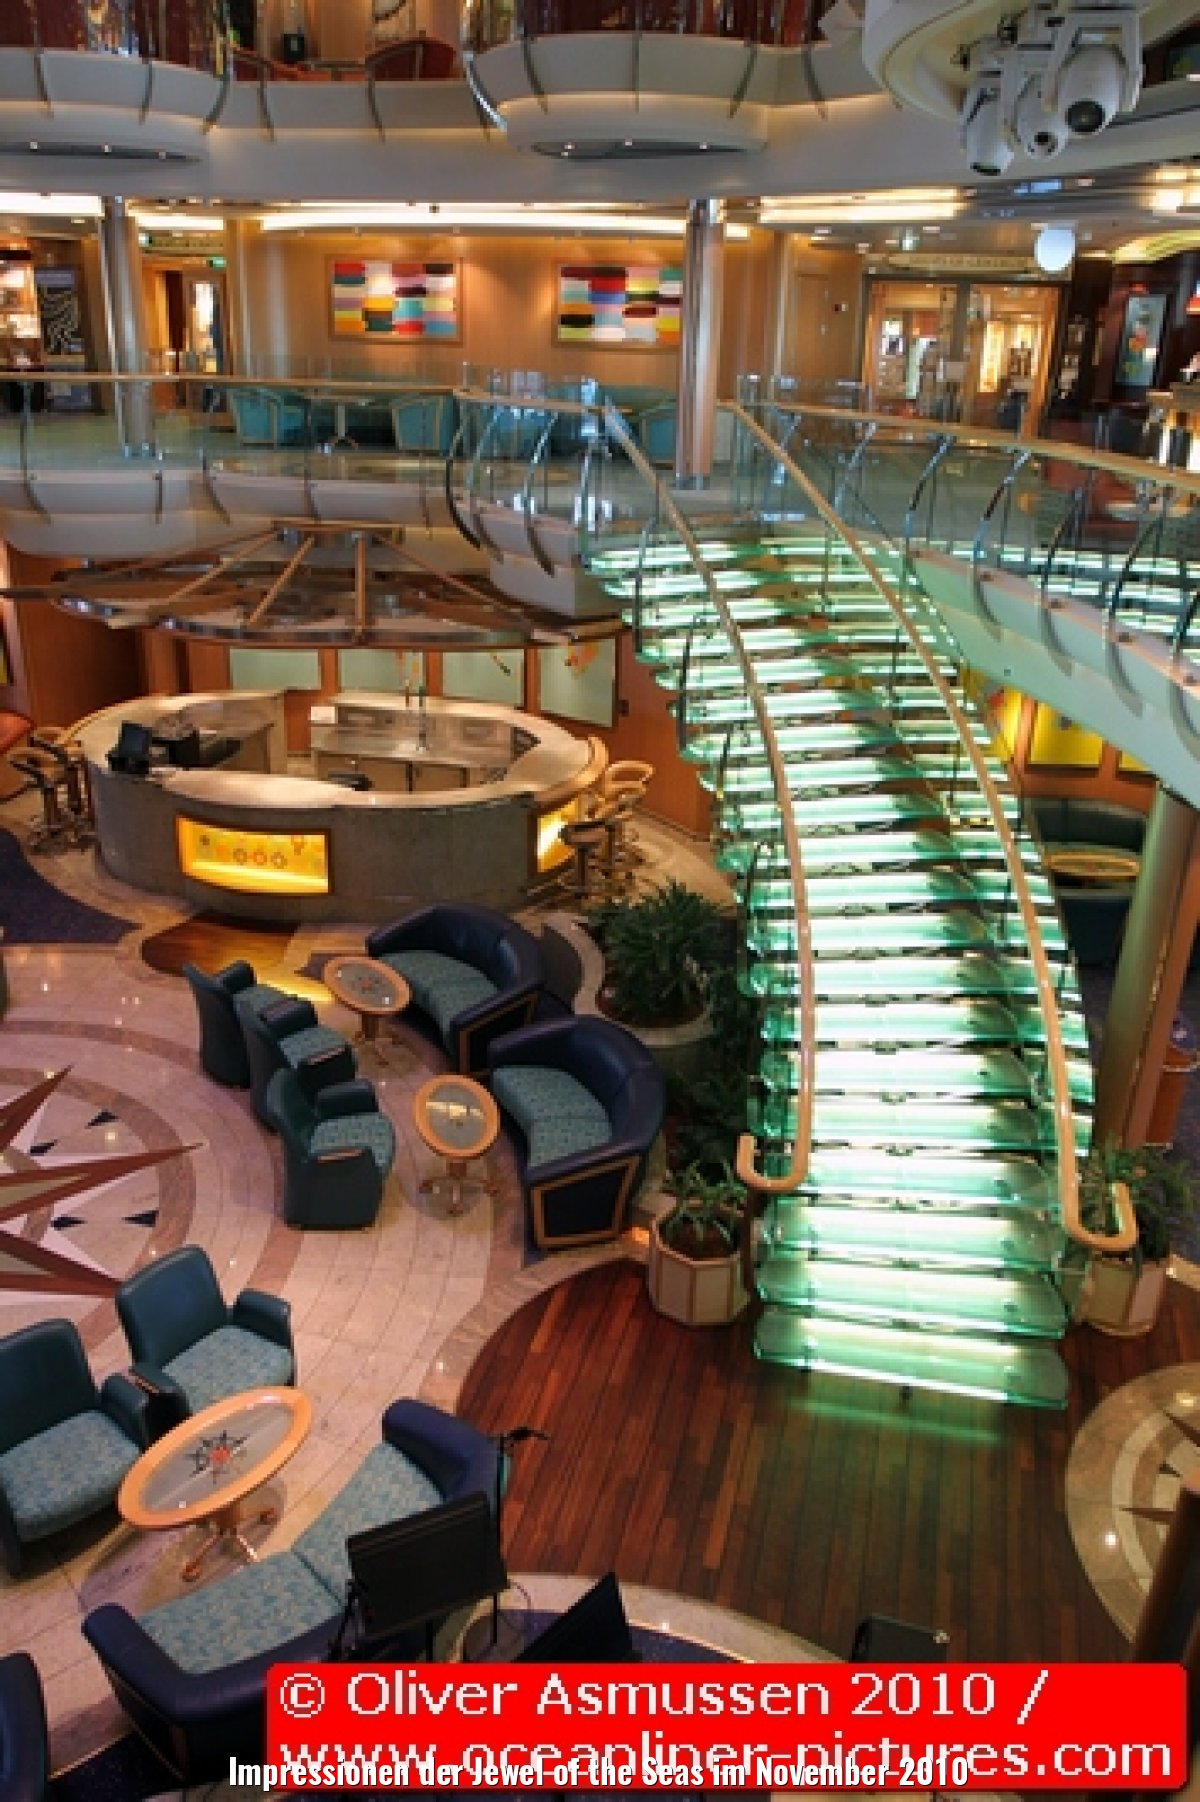 Impressionen der Jewel of the Seas im November 2010